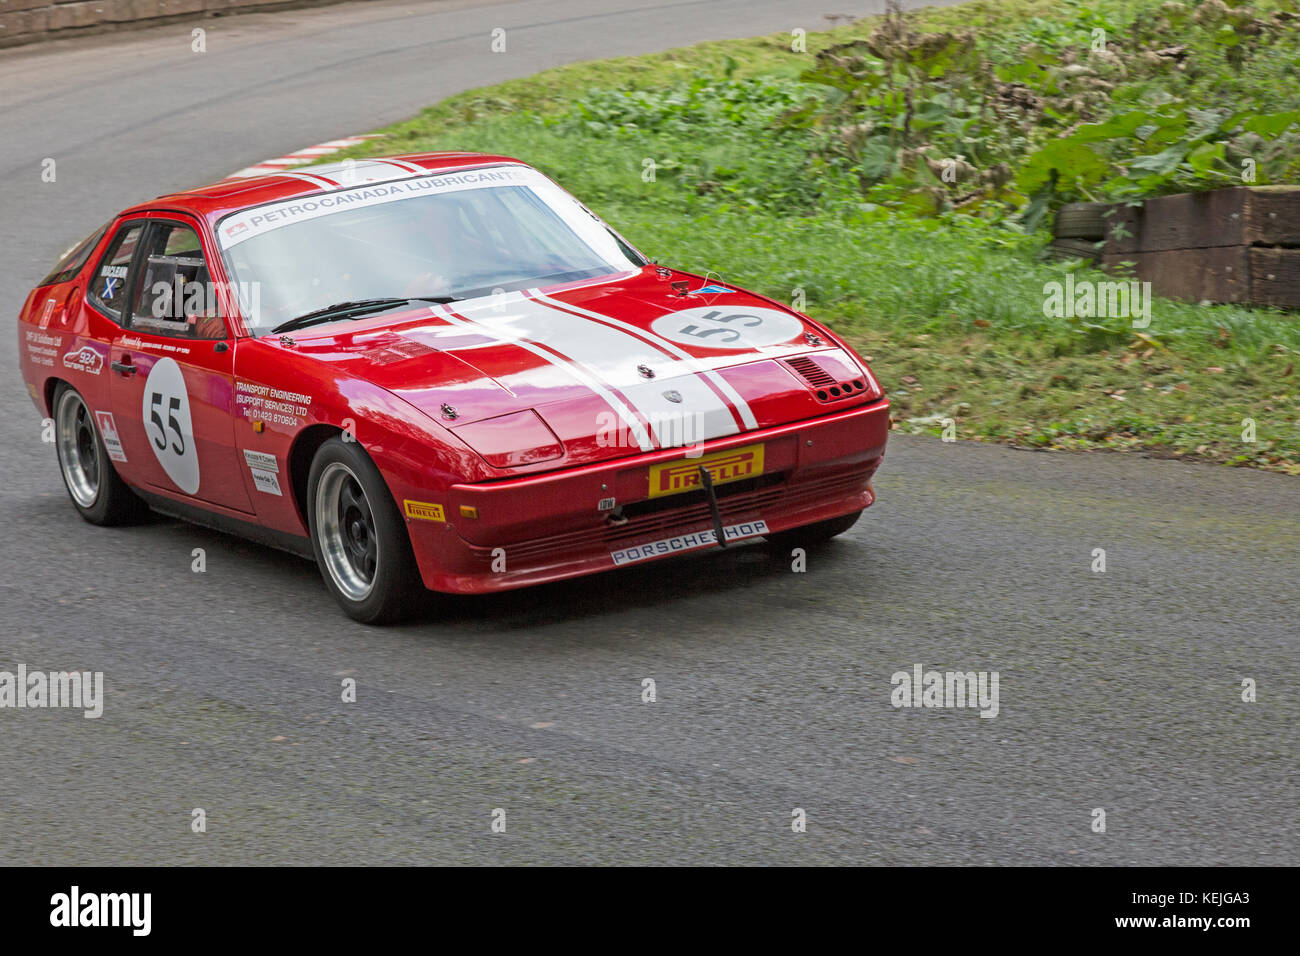 Porsche 924 being driven by Stuart Maclean at the Autumn Speed Finale at Shelsley Walsh Hill Climb, Worcestershire, - Stock Image